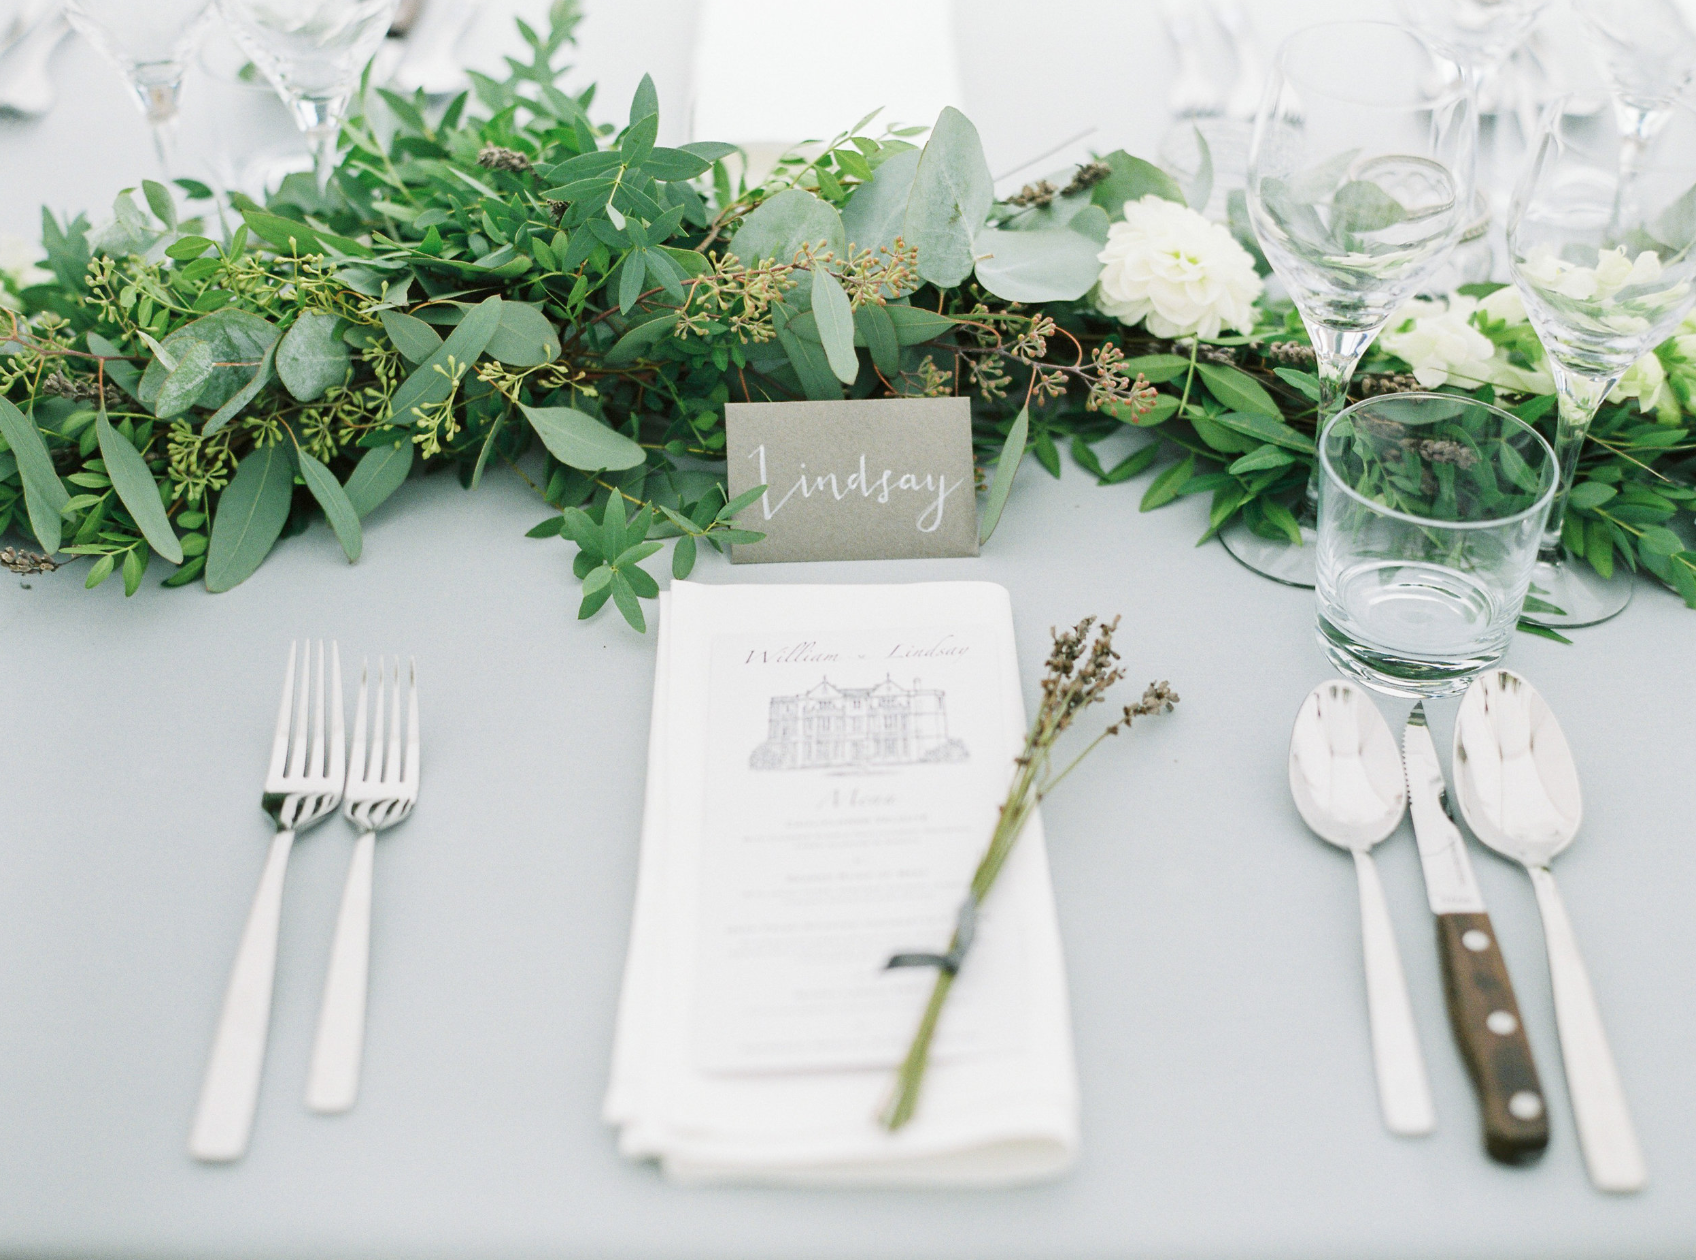 Vanilla Rose Events foliage wedding place setting